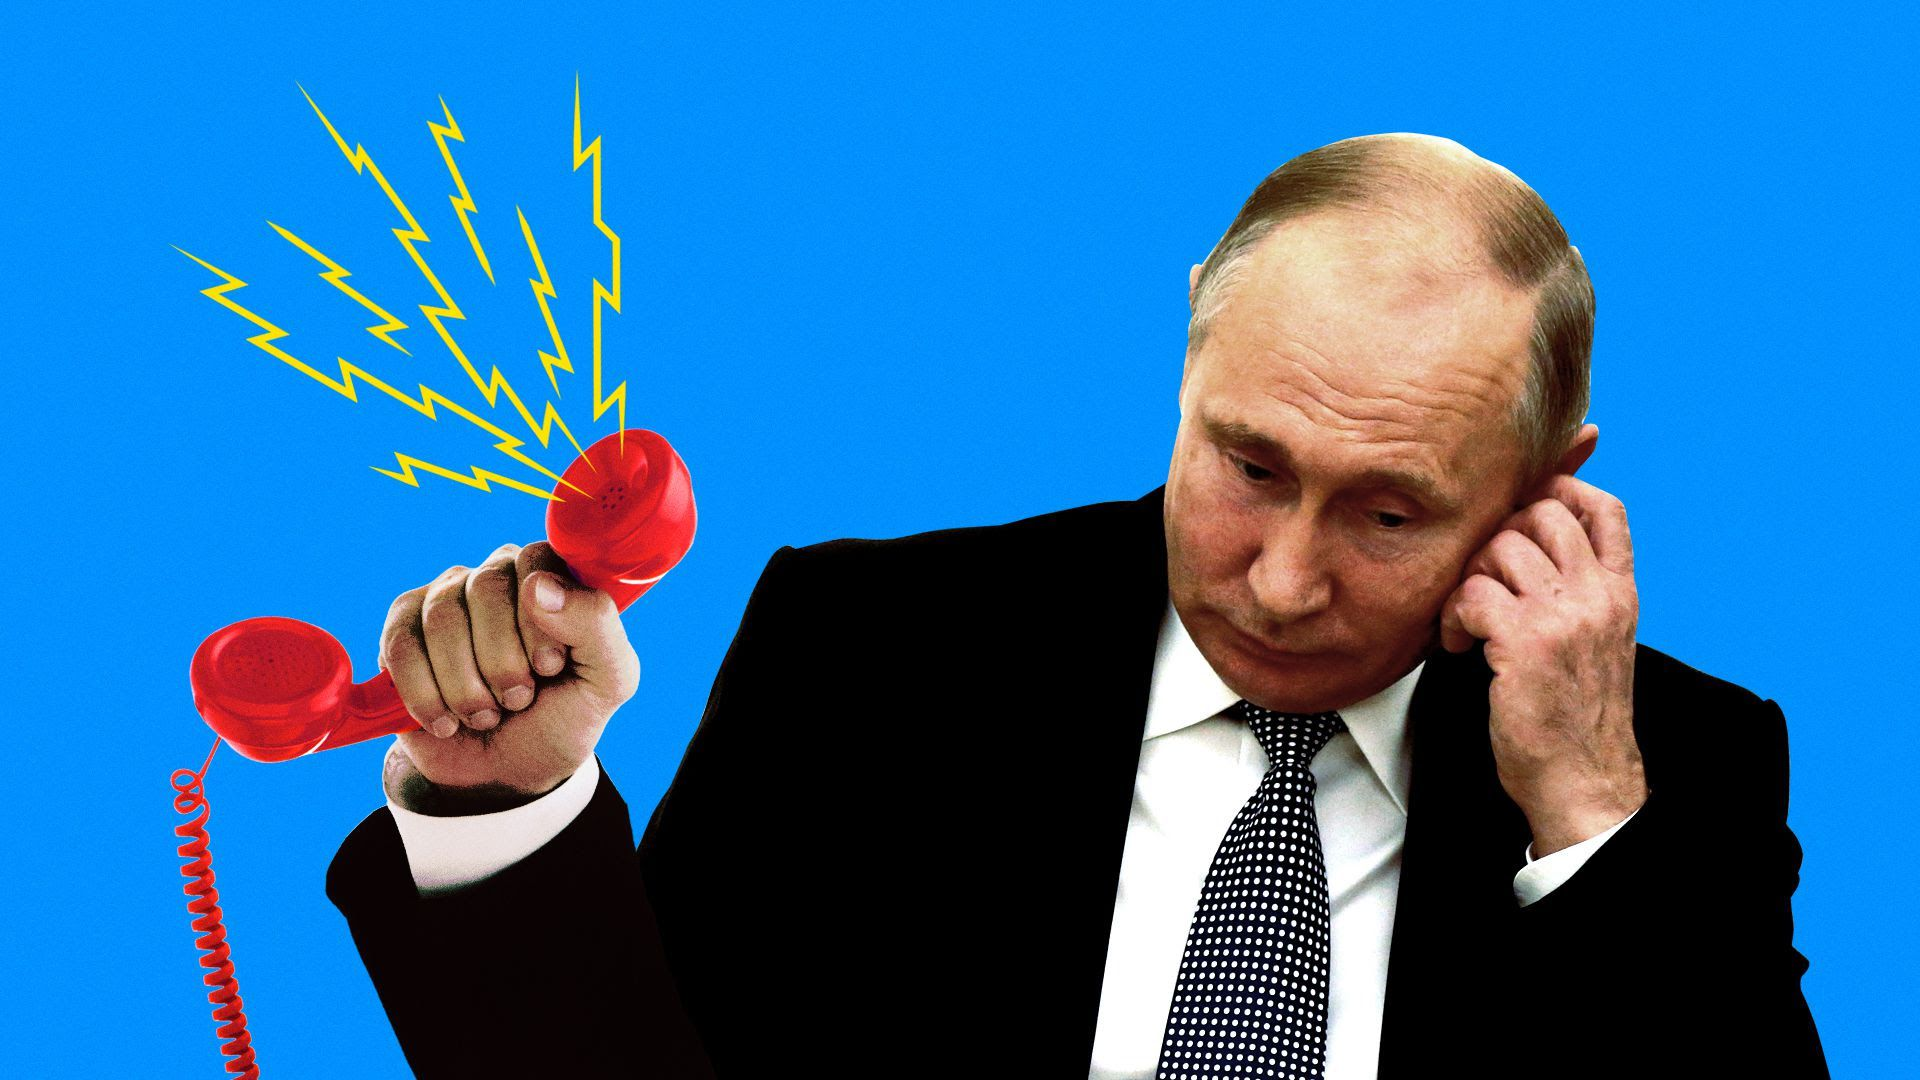 Russian President Vladimir Putin holding a red phone with noise coming out of it